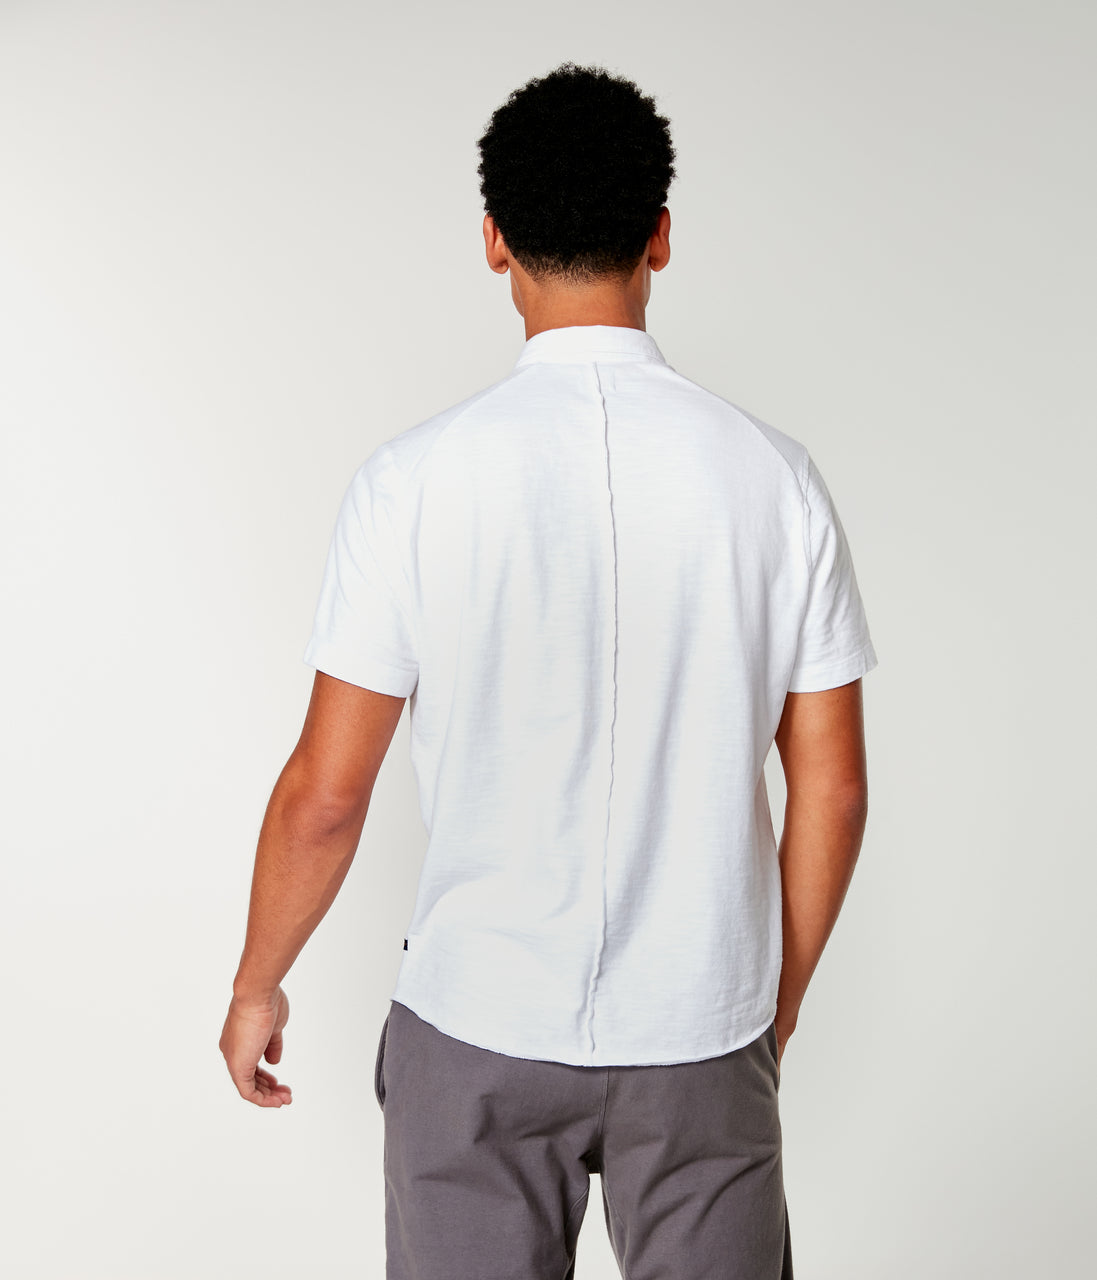 Soft Slub Jersey On-Point Shirt - White - Good Man Brand - Soft Slub Jersey On-Point Shirt - White